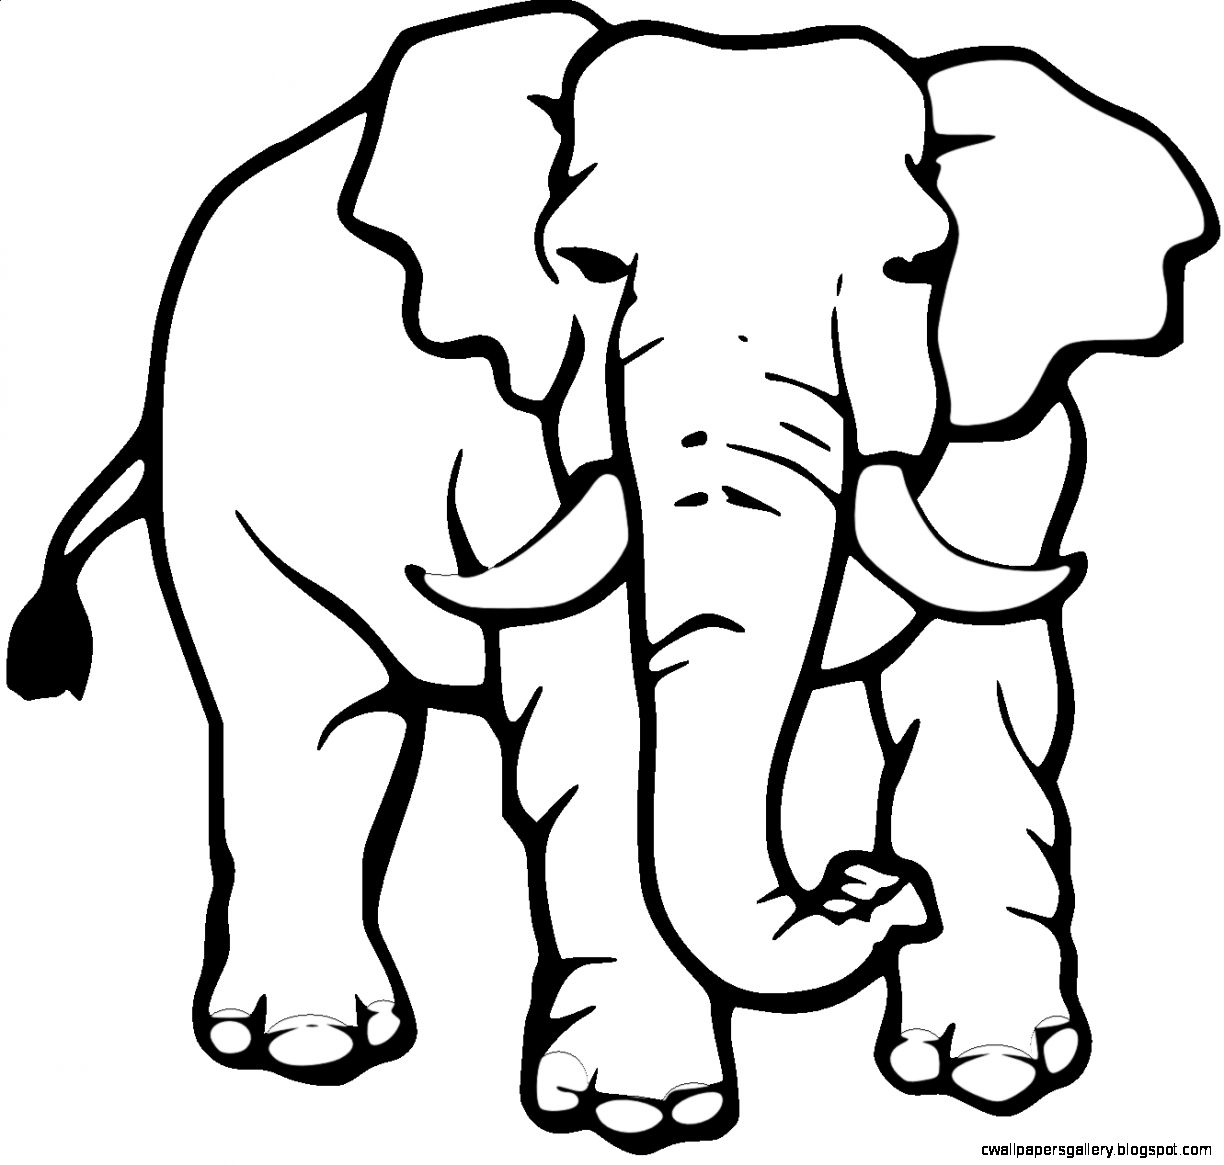 1224x1165 Elephant Black And White Drawing Wallpapers Gallery